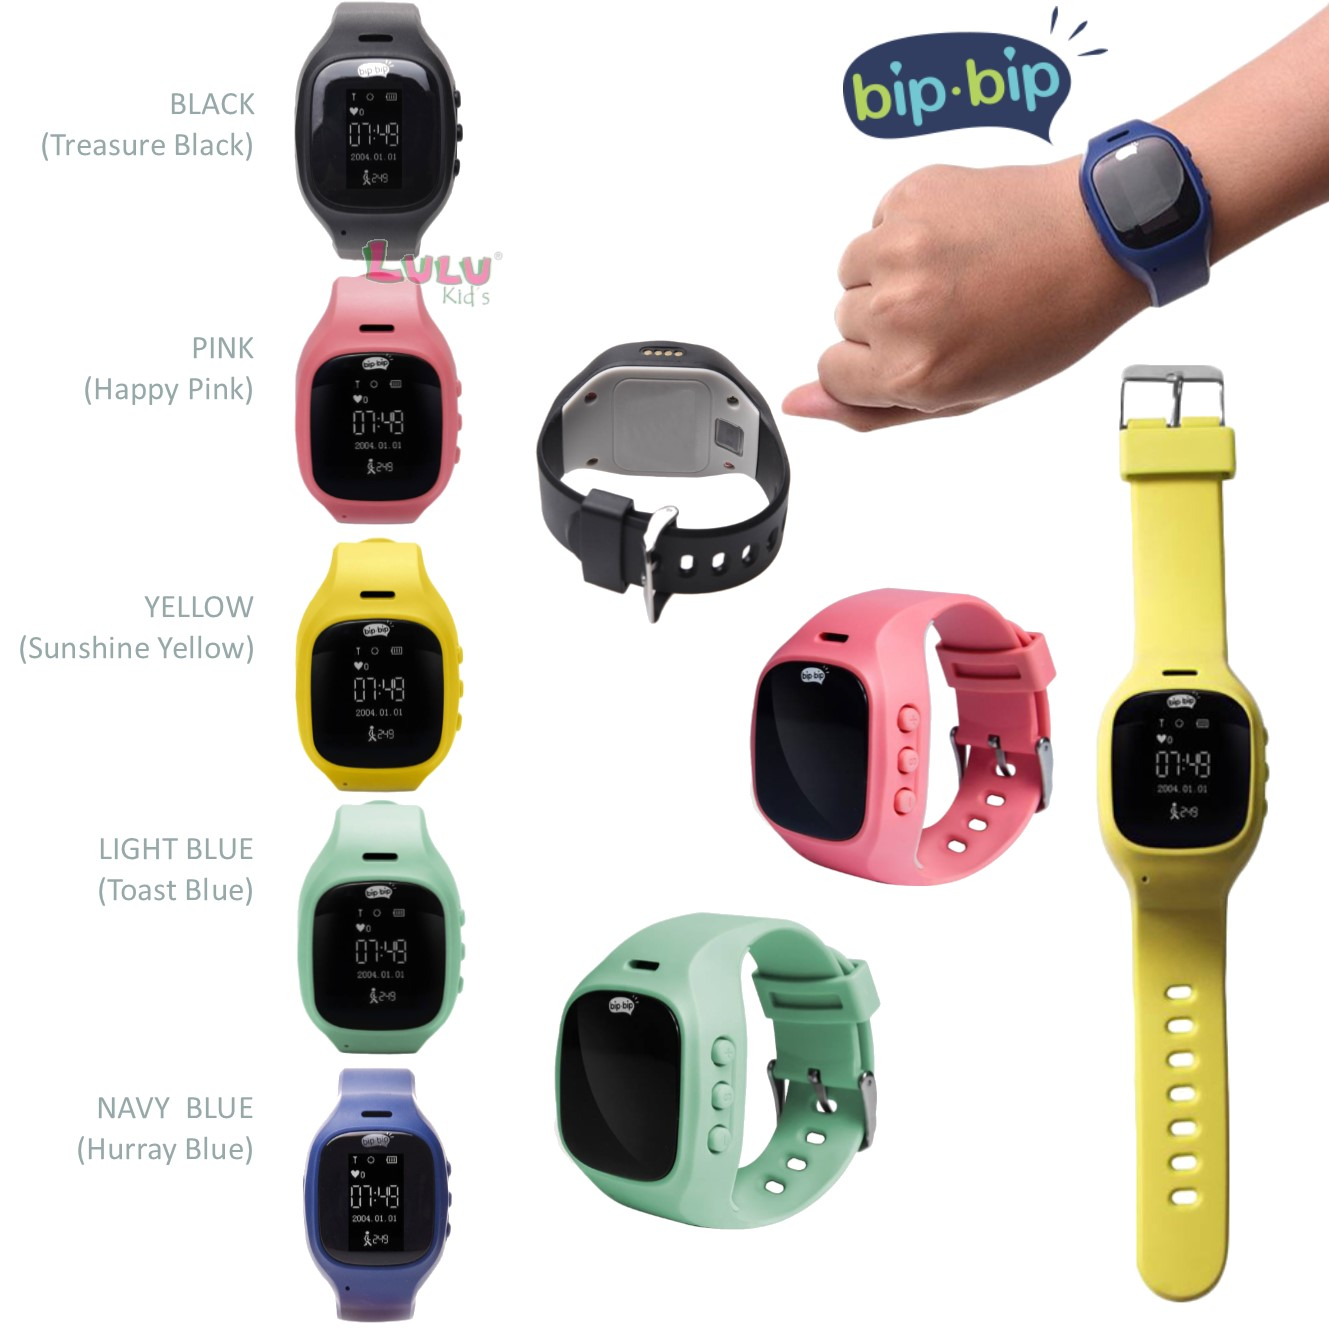 Bipbip Family's Guardian Smartwatch